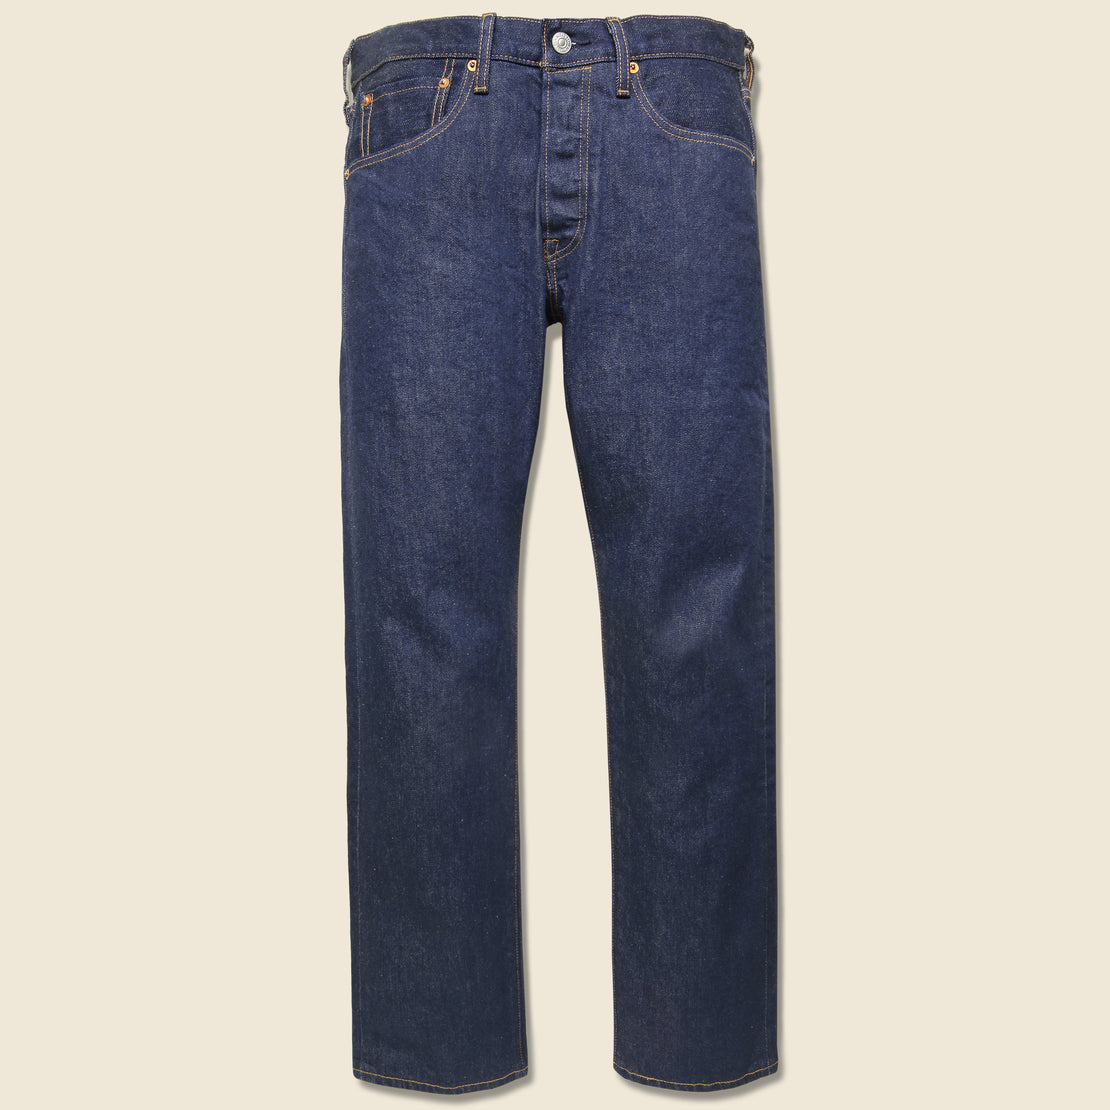 Levis Made & Crafted 501 Original Fit Jean - Rinse Stretch